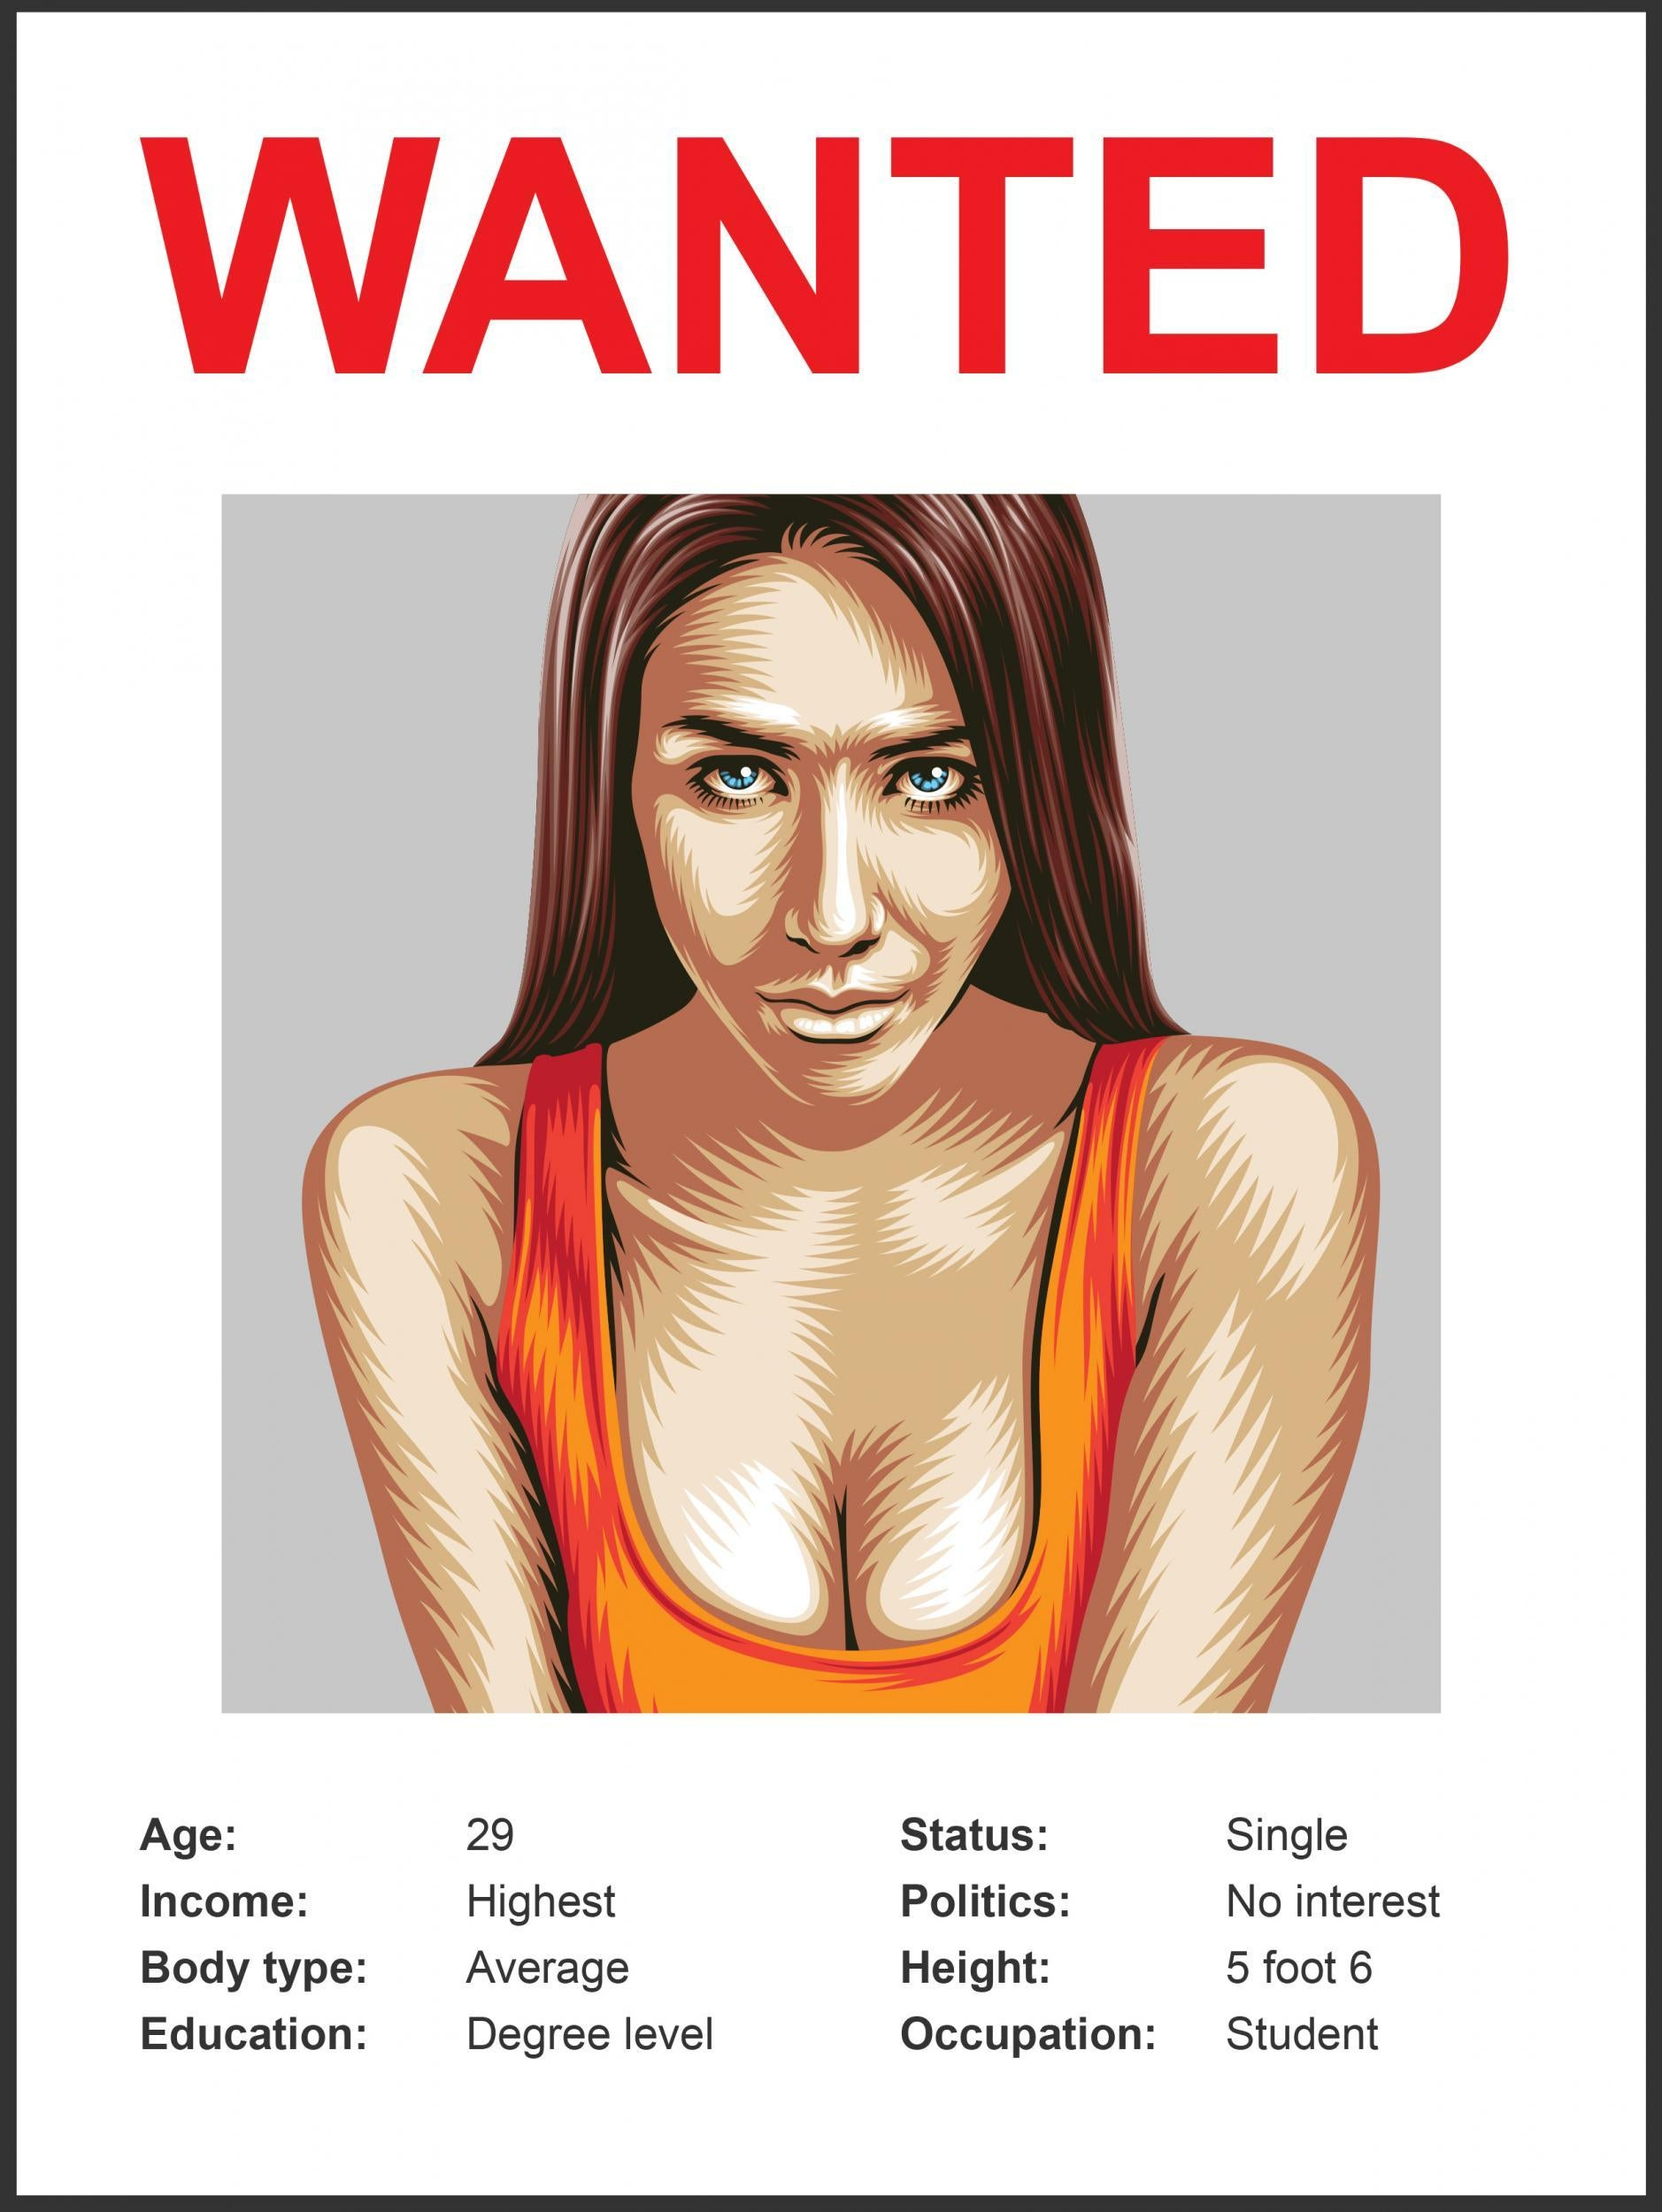 Any dating sites that are not scams